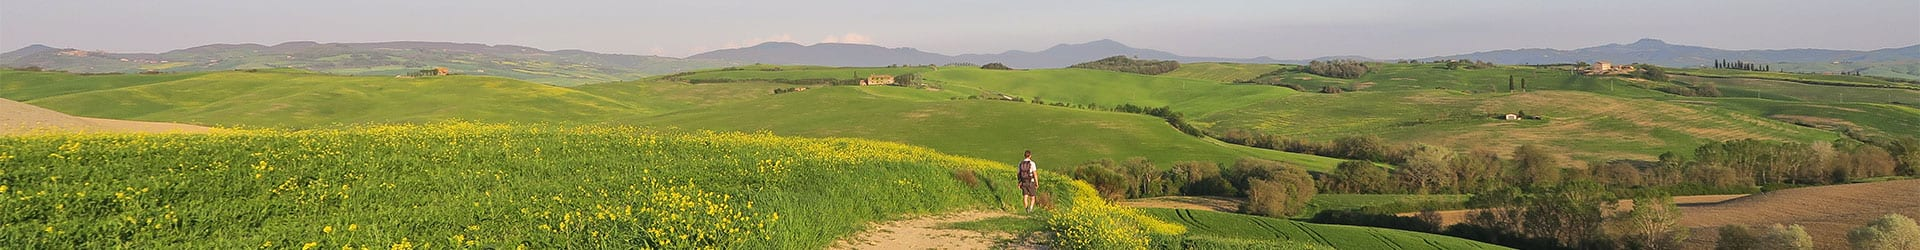 Walking in Tuscany with Collett's